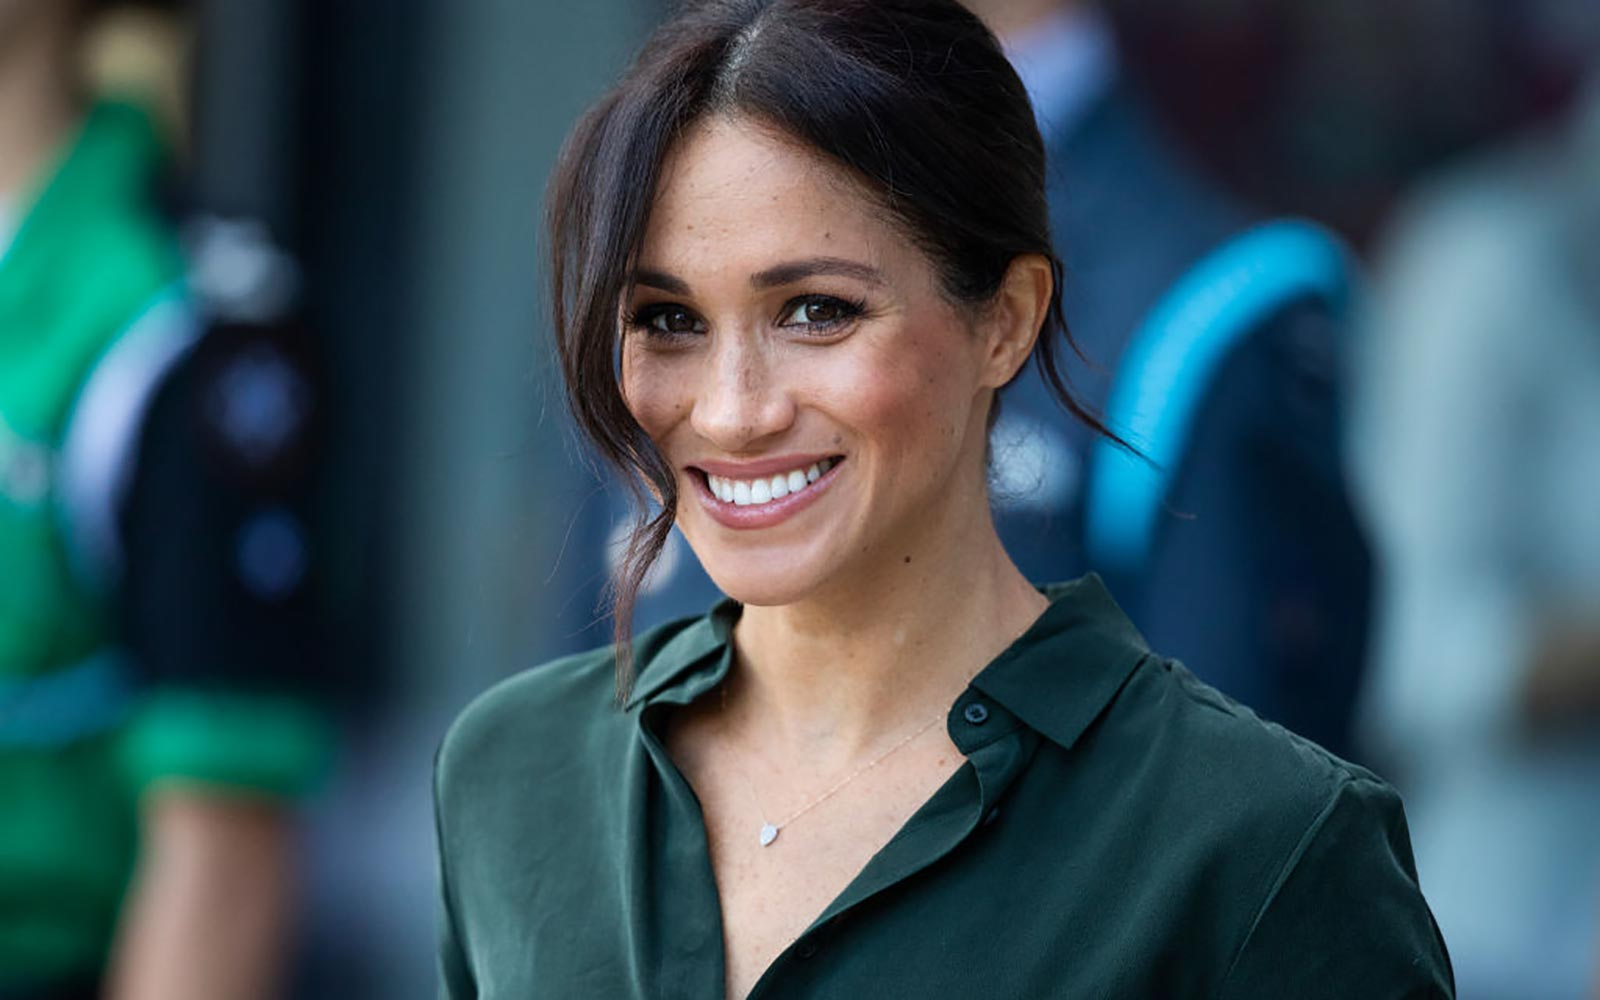 Meghan Markle's co-star shares unseen photos of Duchess of Sussex from 'Suits'